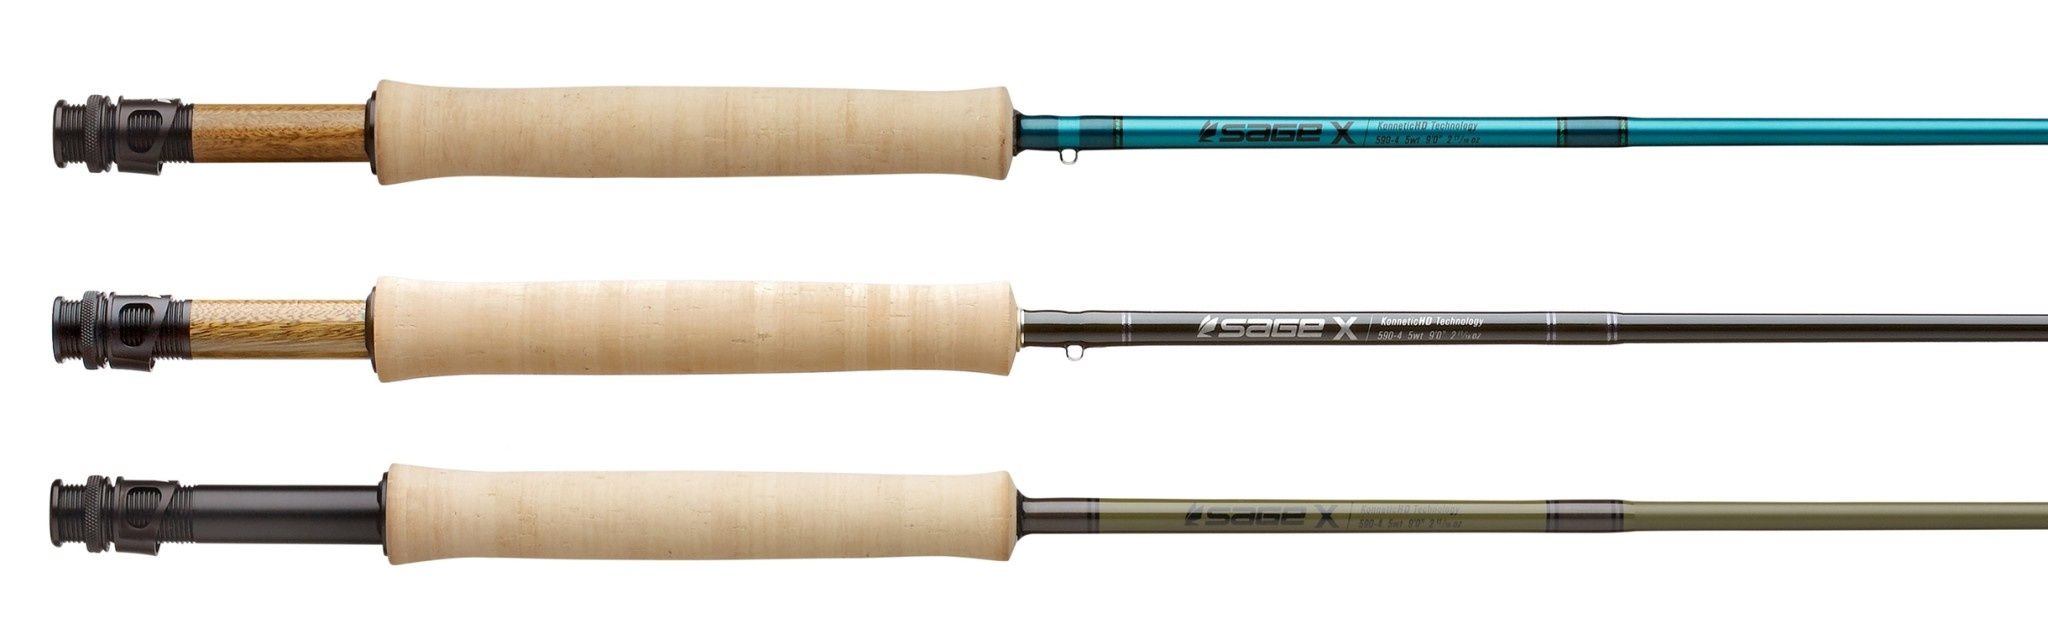 Sage Sage X Fly Rod Electric Teal, 9' 5wt